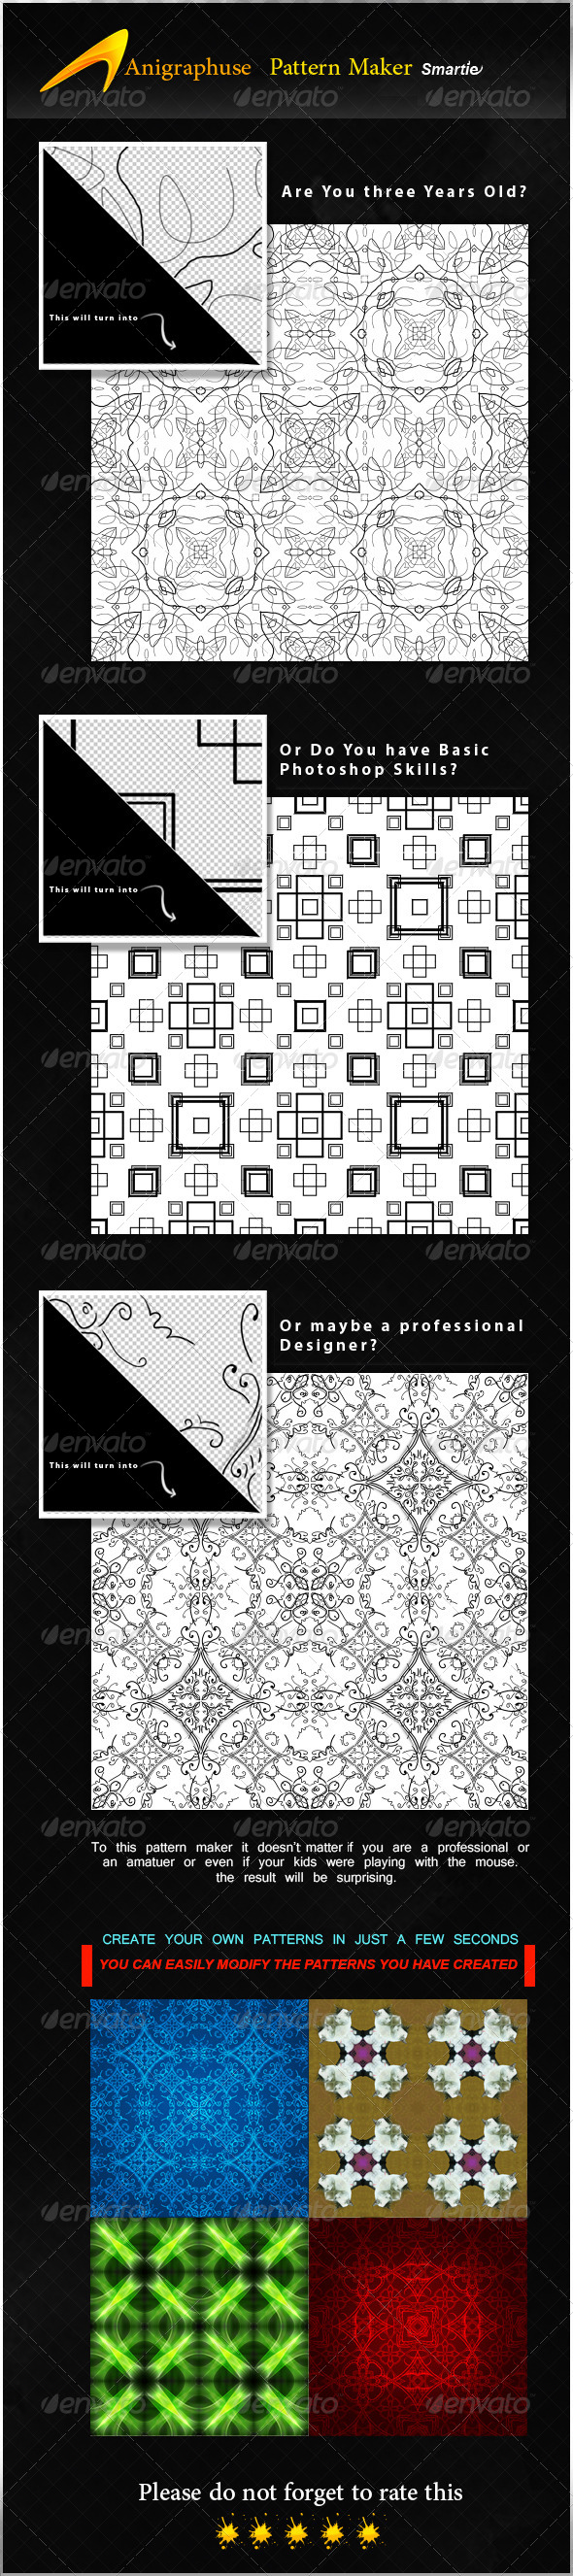 GraphicRiver Smartie Seamless Pattern Maker 8084217